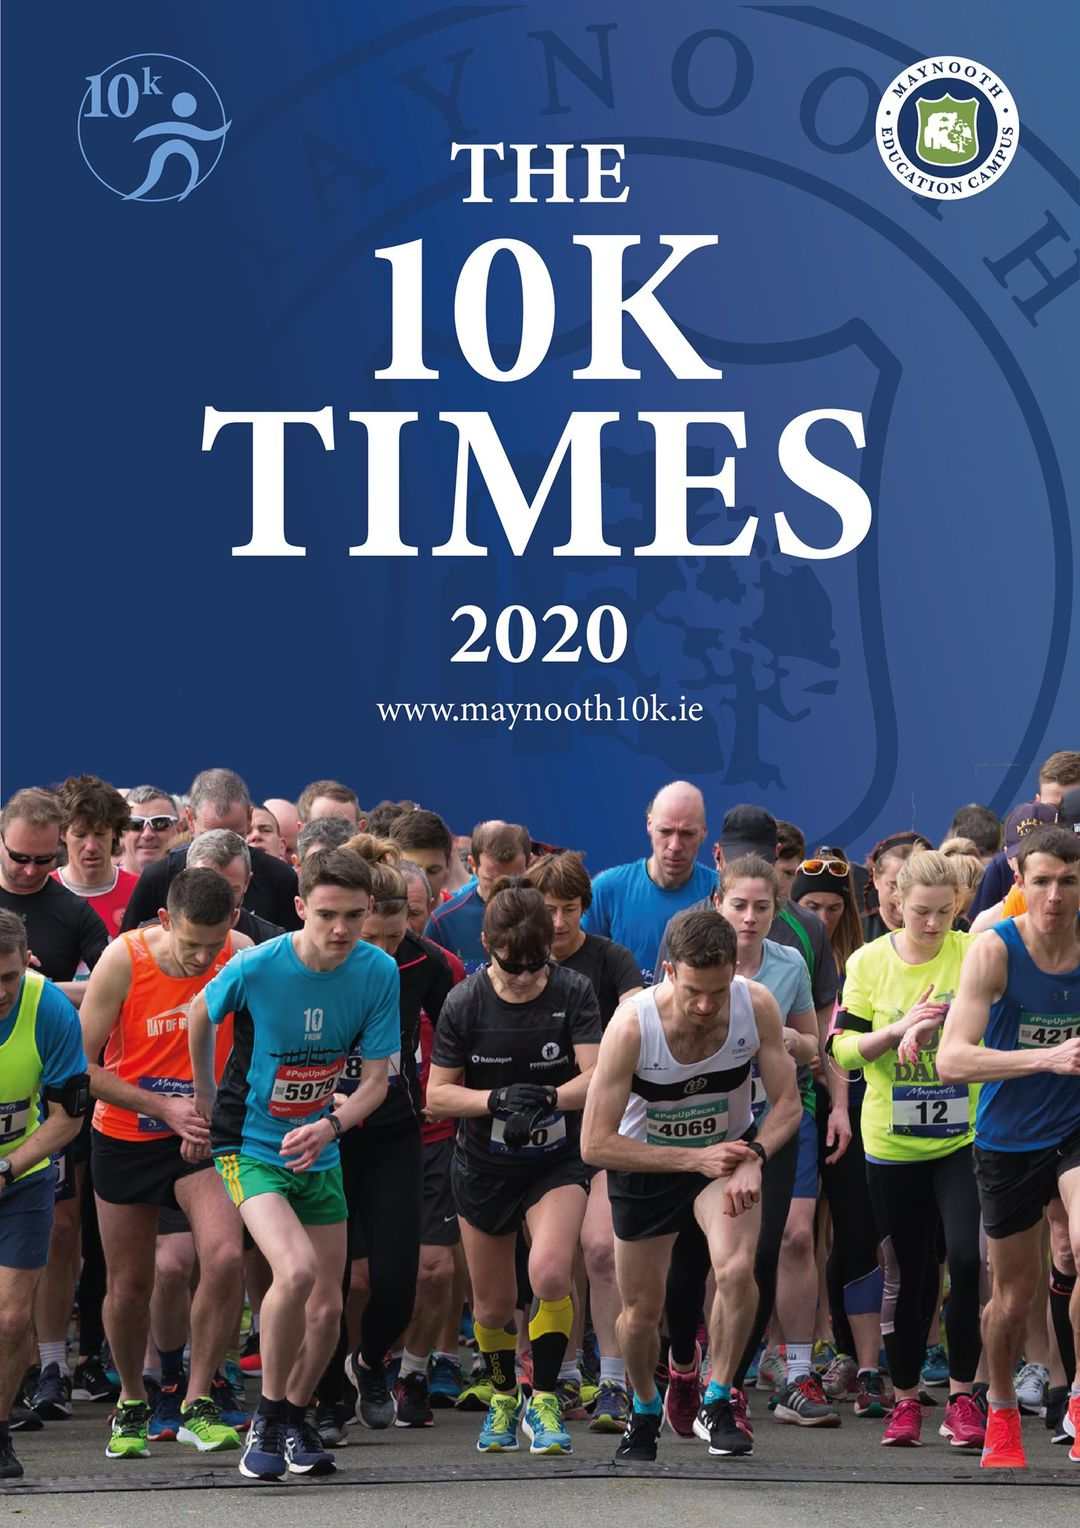 Maynooth 10k Times